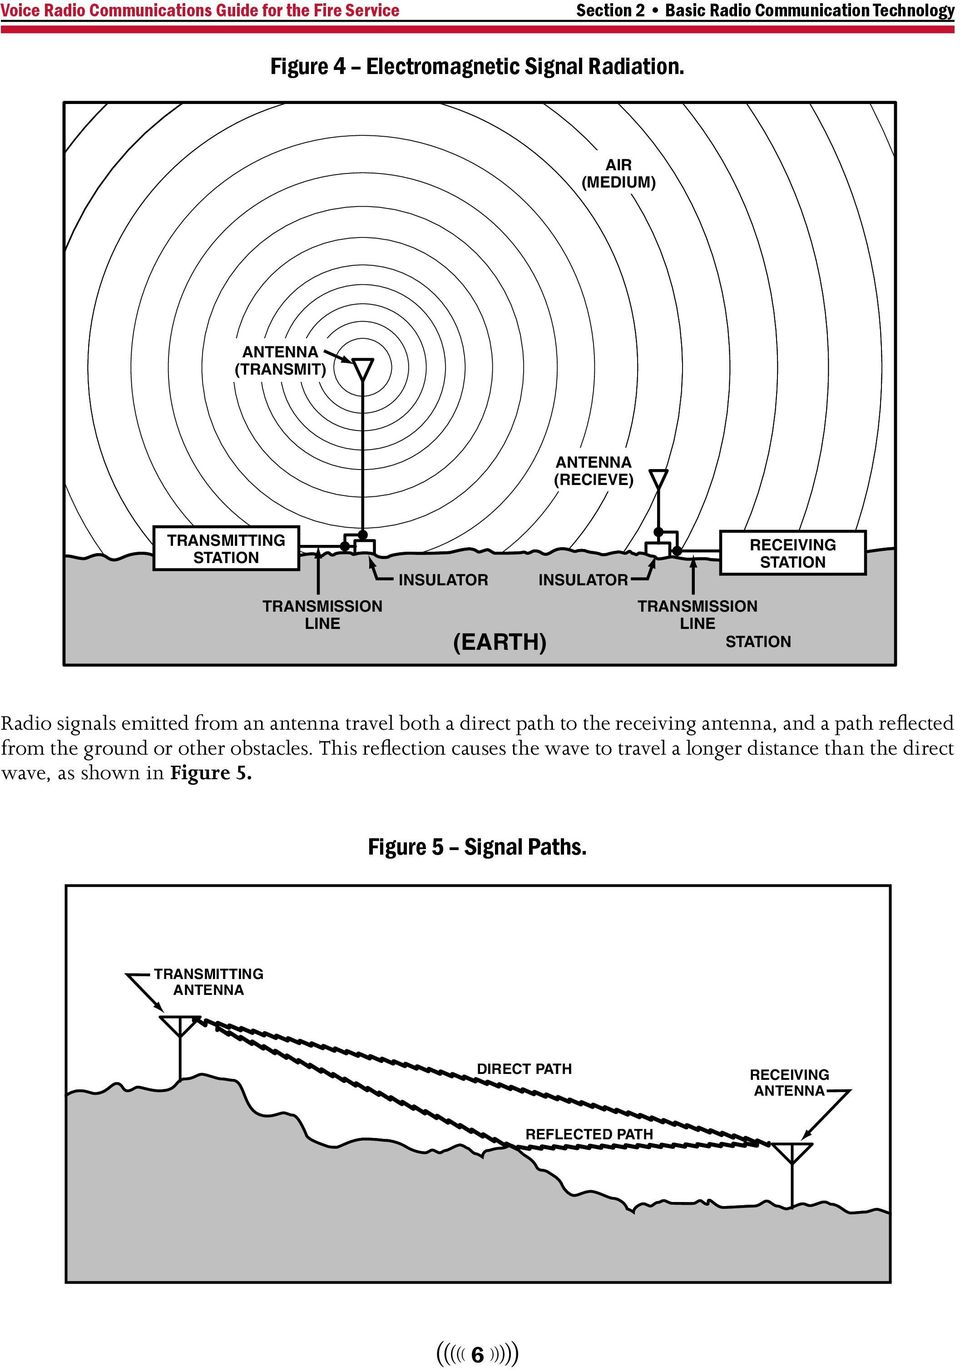 LINE STATION Radio signals emitted from an antenna travel both a direct path to the receiving antenna, and a path reflected from the ground or other